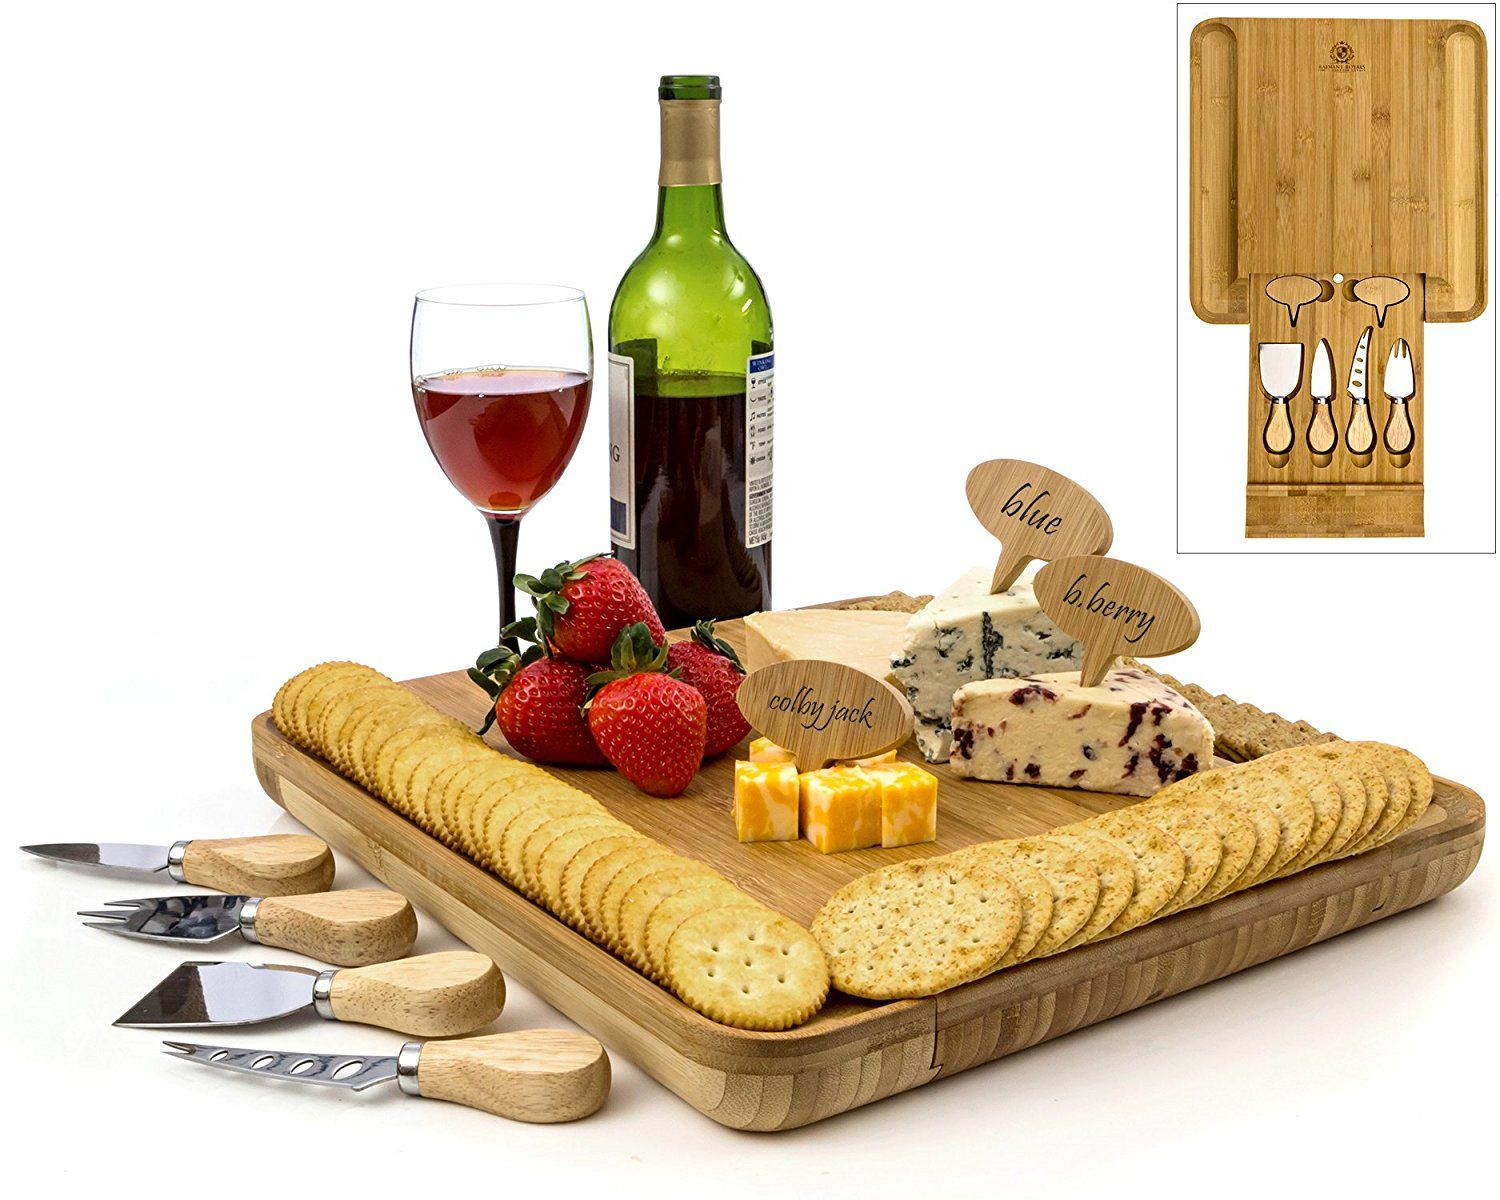 AmazonSmile | Bamboo Cheese Board Set Serving Tray Platter with Cutlery Set and Slide-out  sc 1 st  Pinterest & AmazonSmile | Bamboo Cheese Board Set Serving Tray Platter with ...